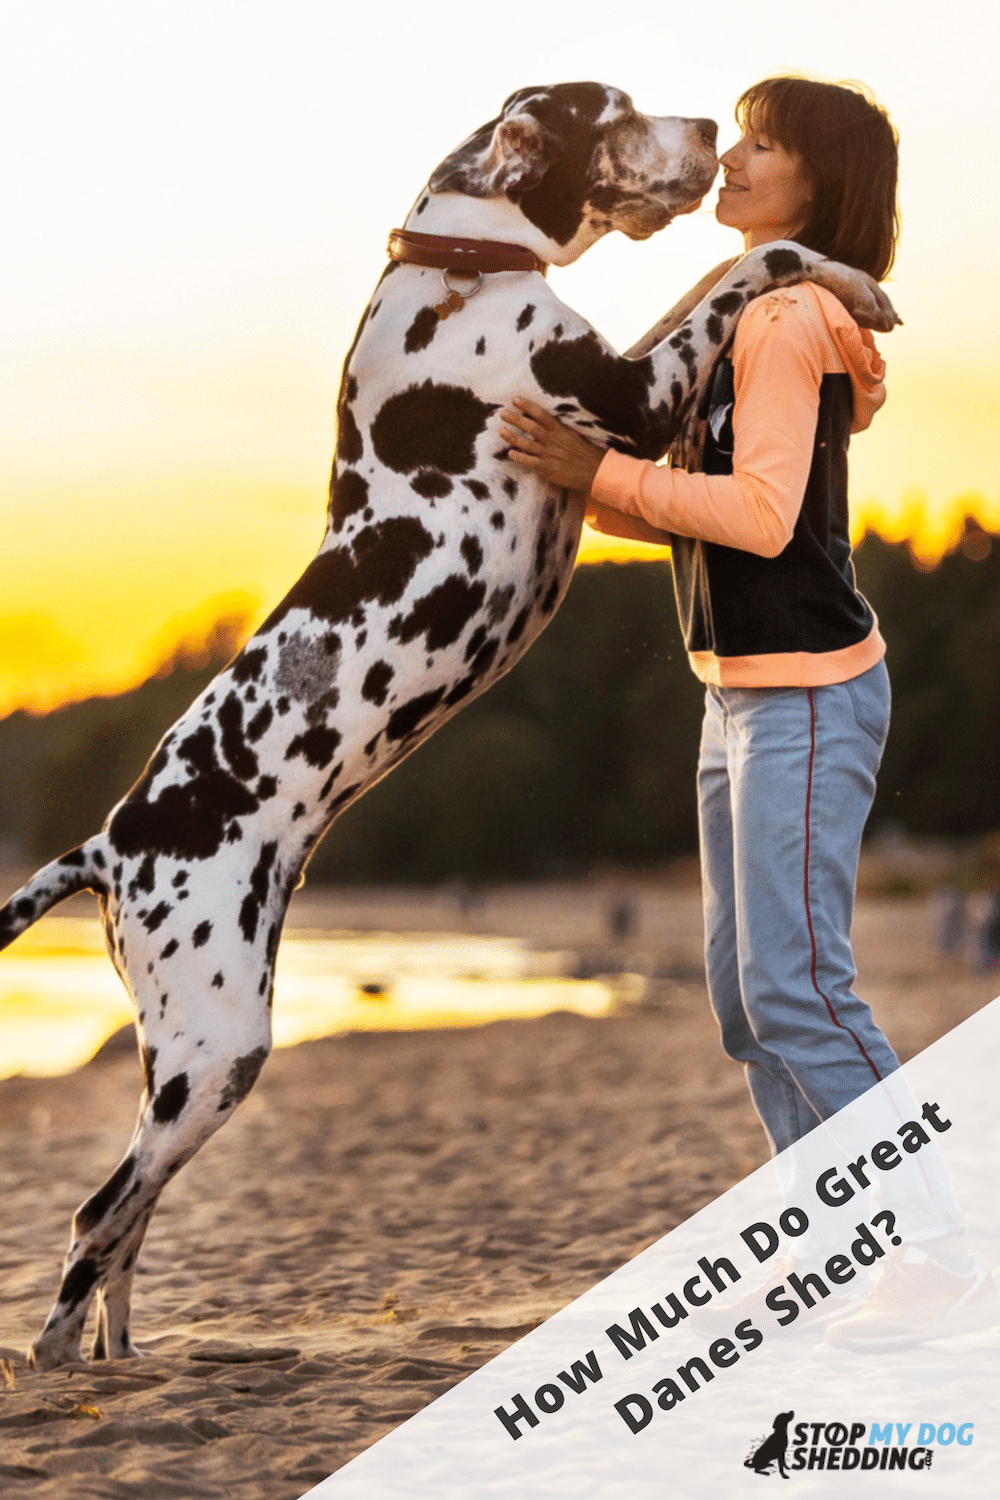 Do Great Danes Shed Much? (All You Need to Know)